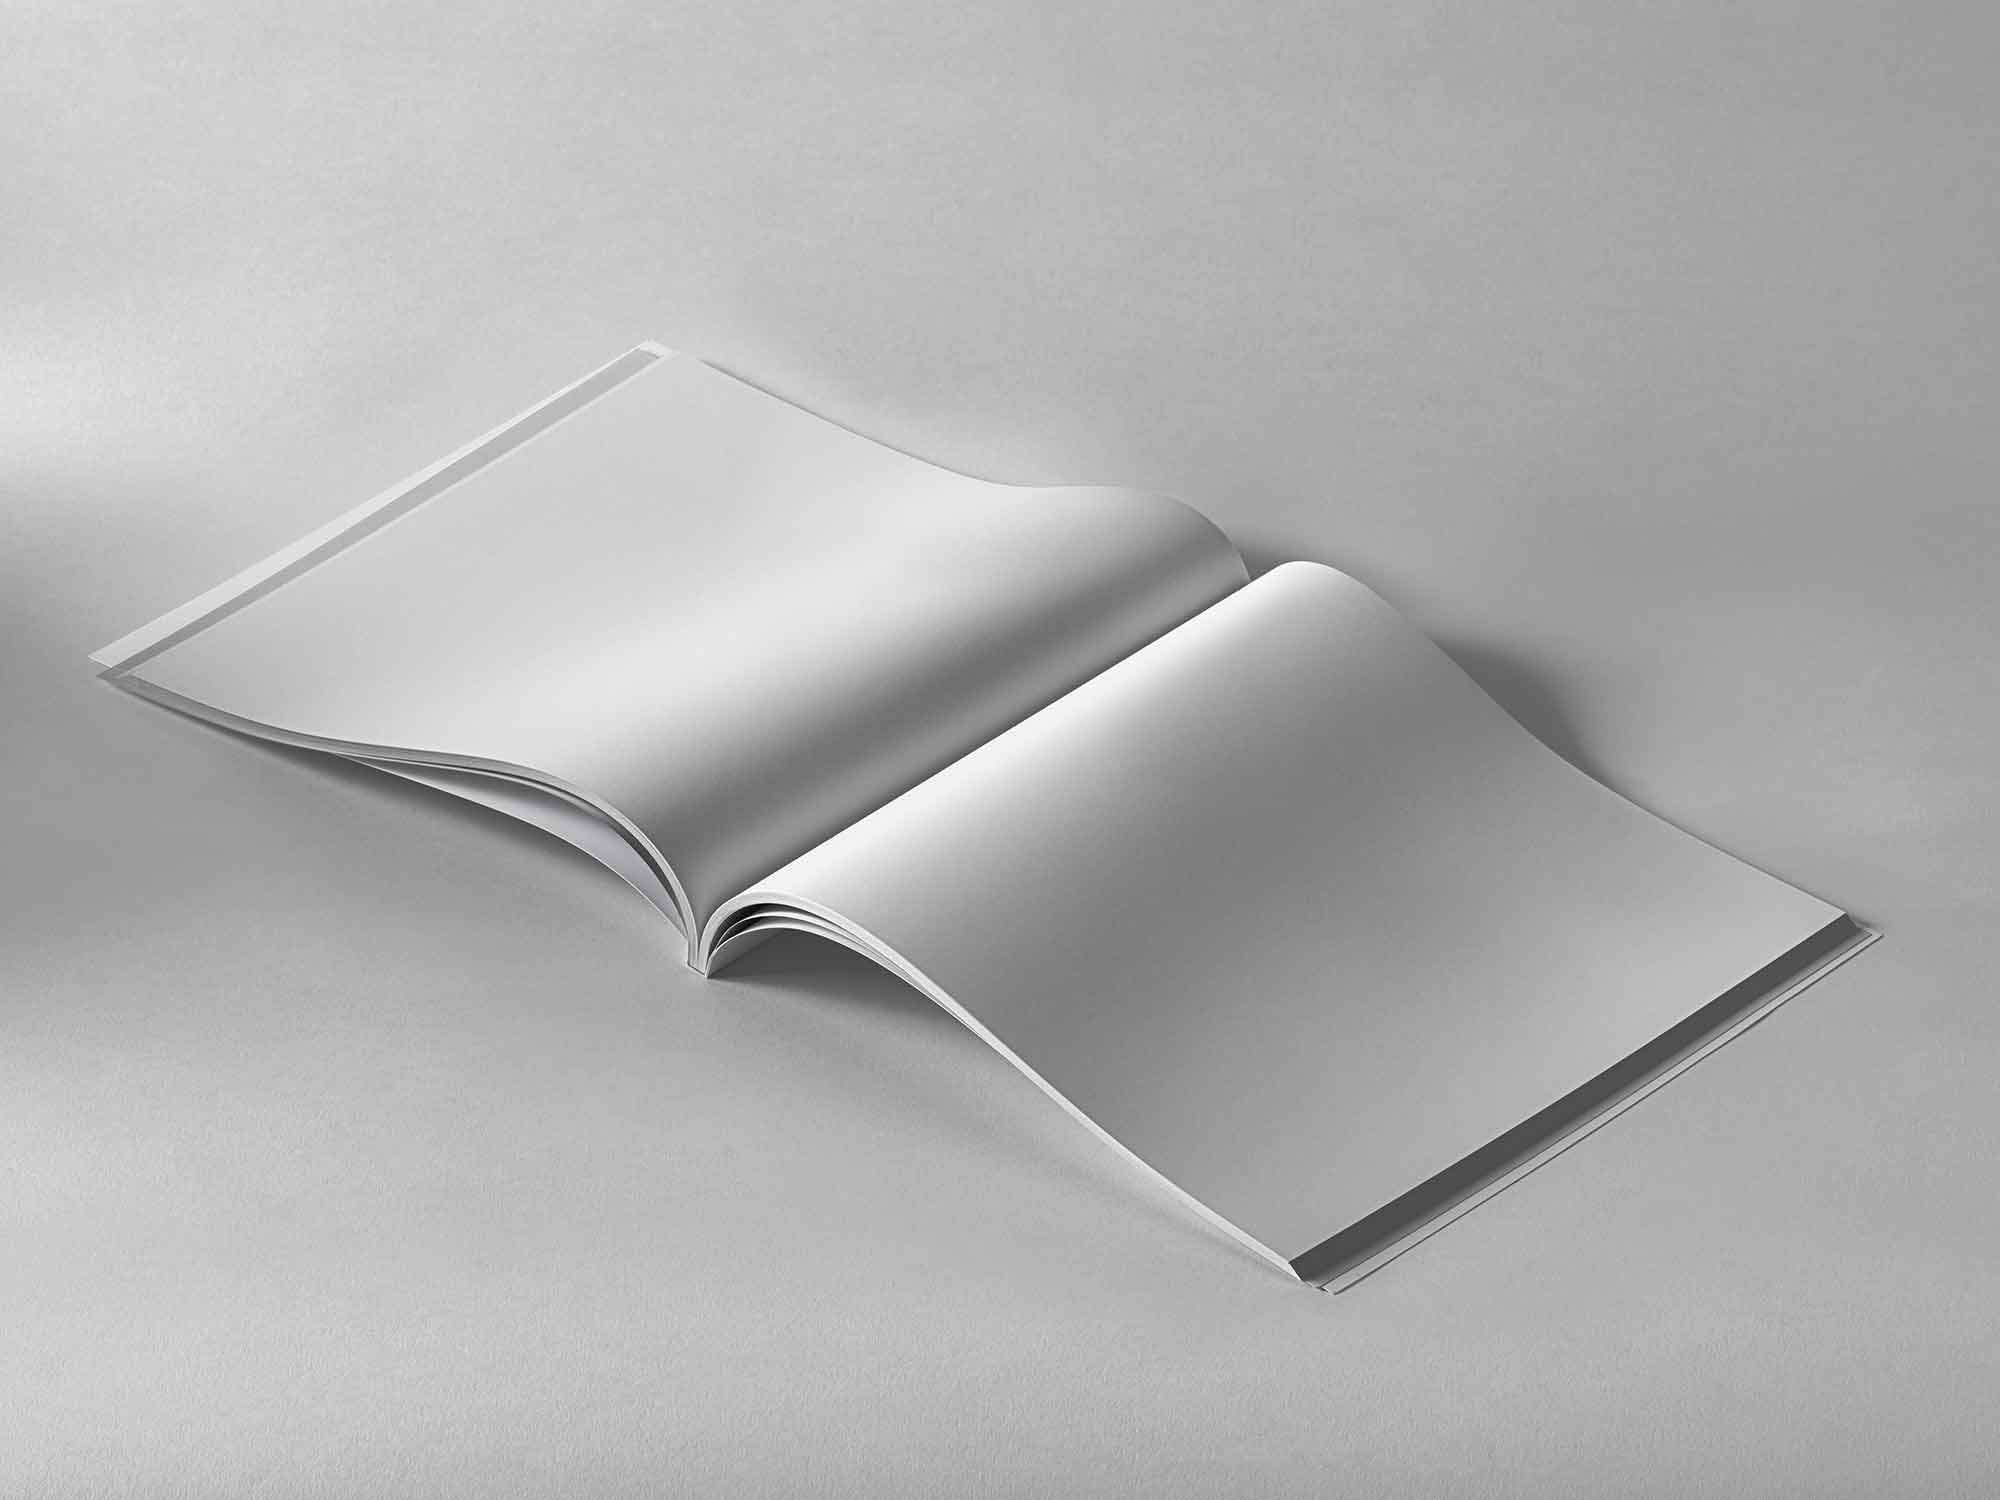 Open Square Magazine Mockup 2